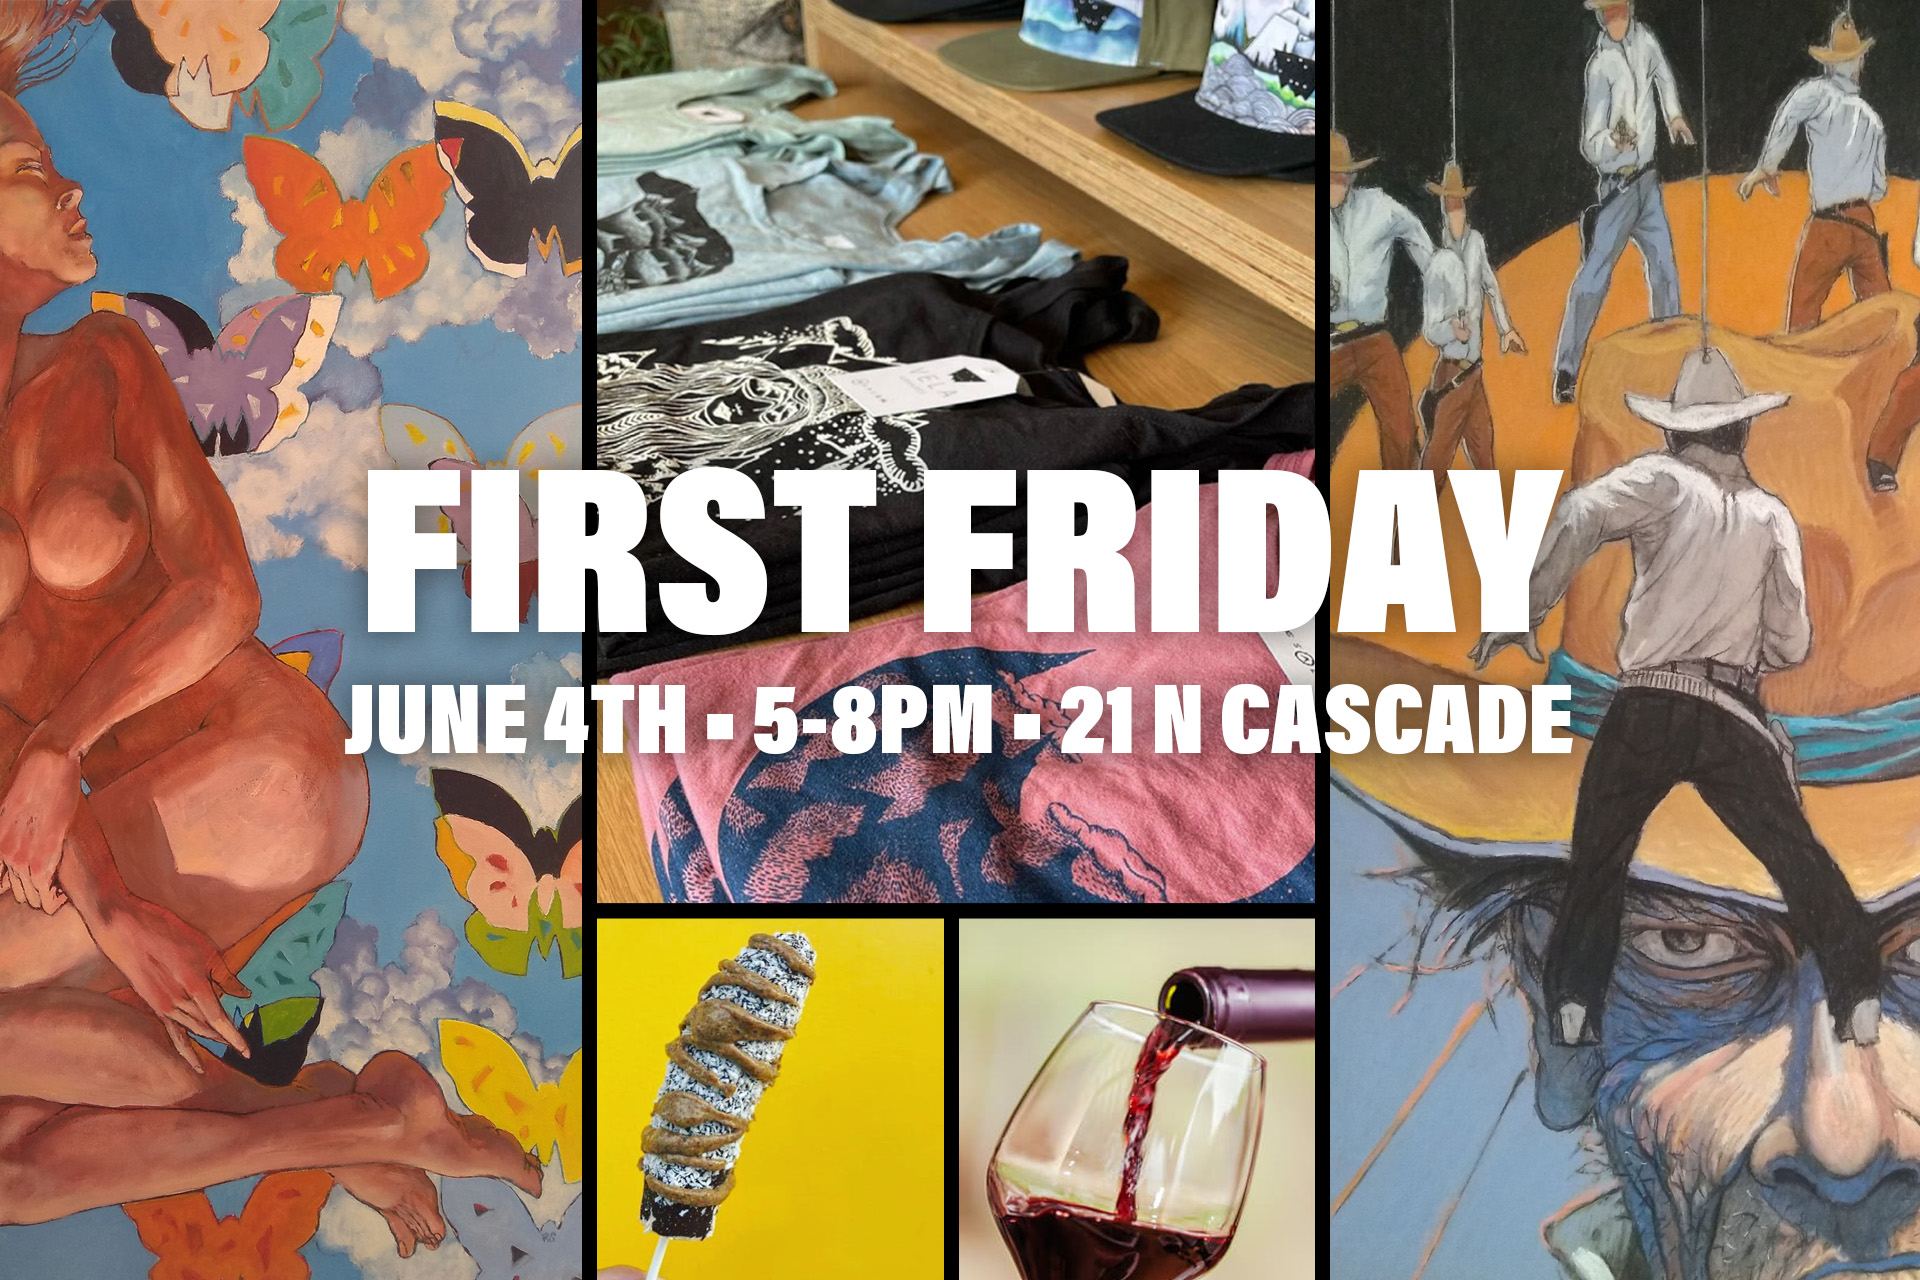 first friday art show june 4th 2021 with rich sprankle vela apparel brrrnana and wine